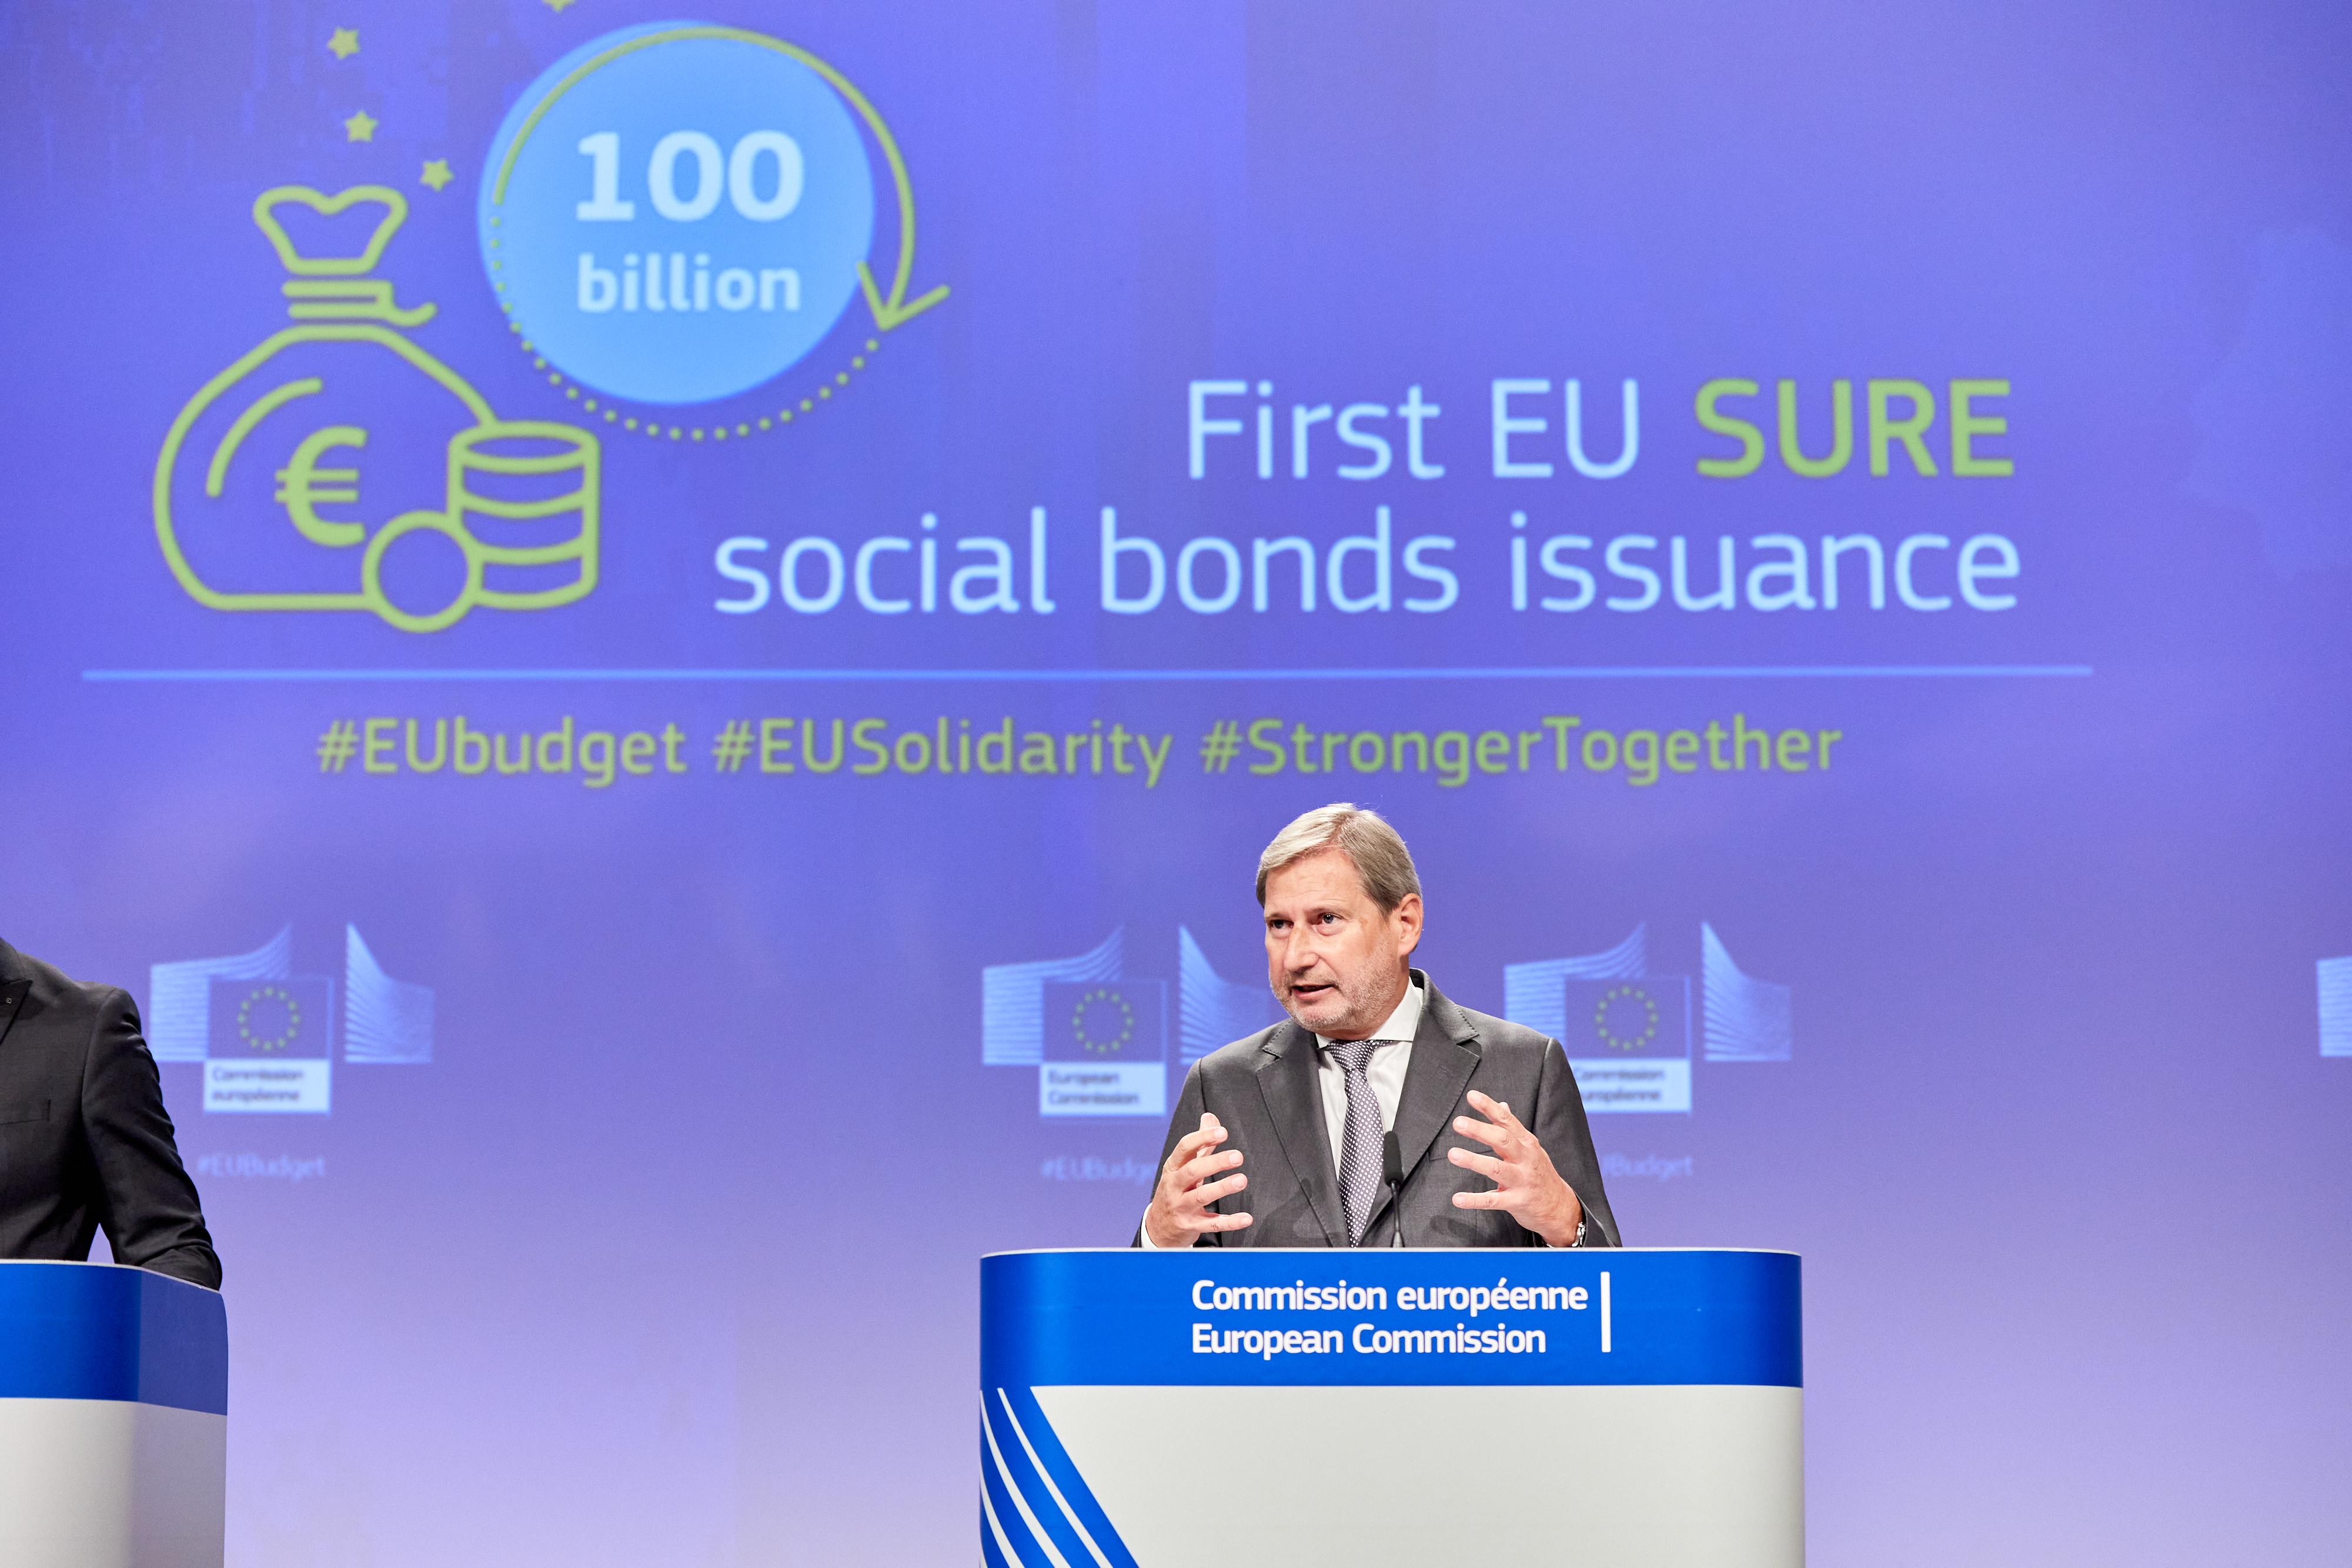 Commissioner Hahn @ First EU SURE social bonds issuance